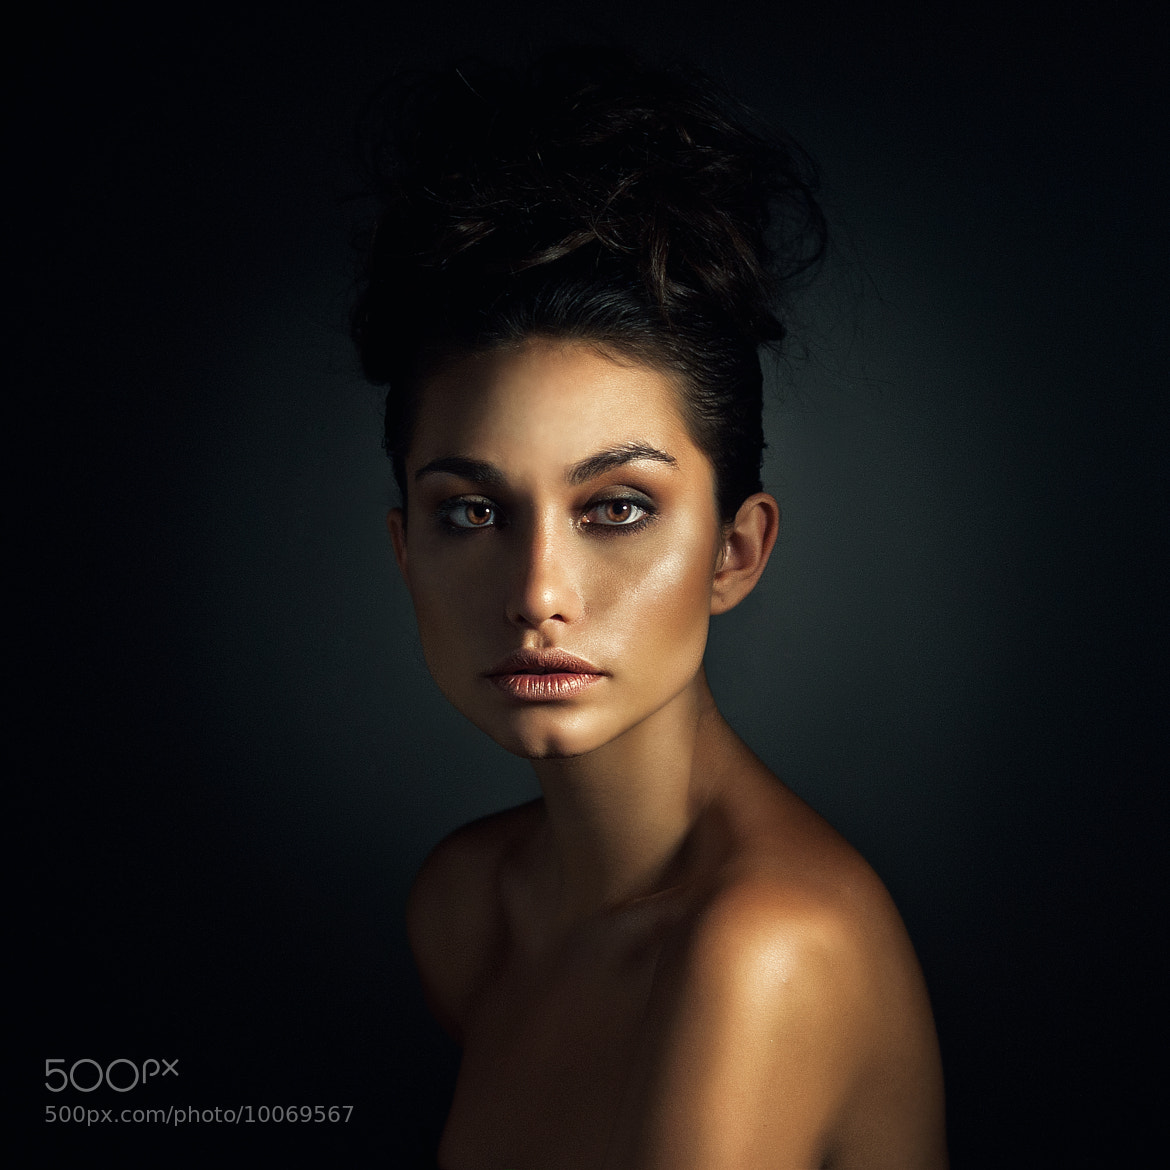 Photograph Untitled by Alexander Makhlay on 500px